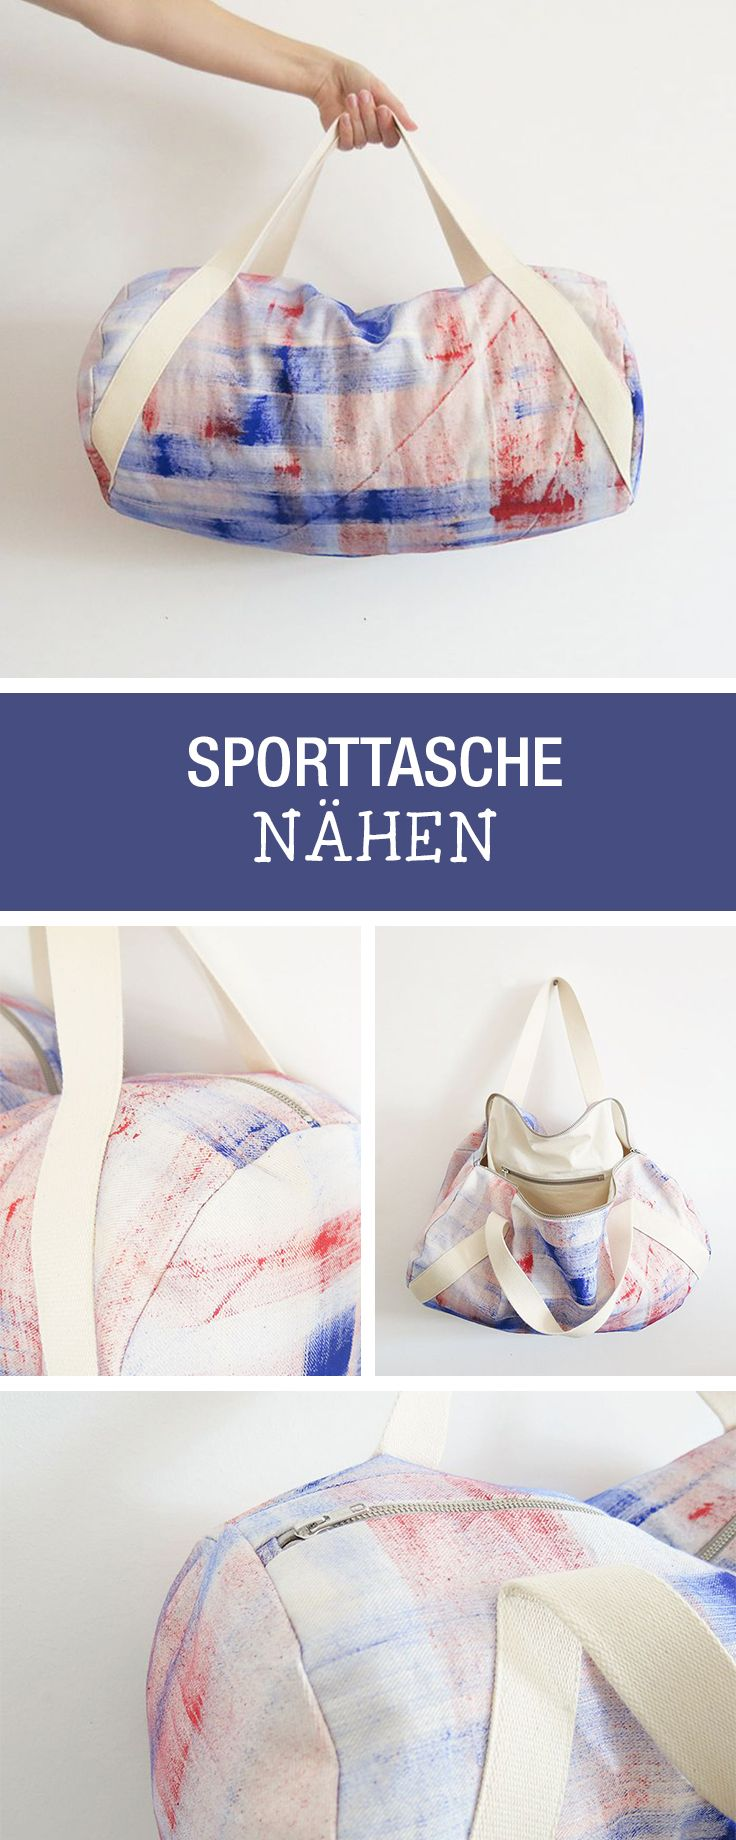 Nähanleitung für eine angesagte Sporttasche oder Weekender / diy sewing tutorial: sew your own duffle bag or weekender via DaWanda.com